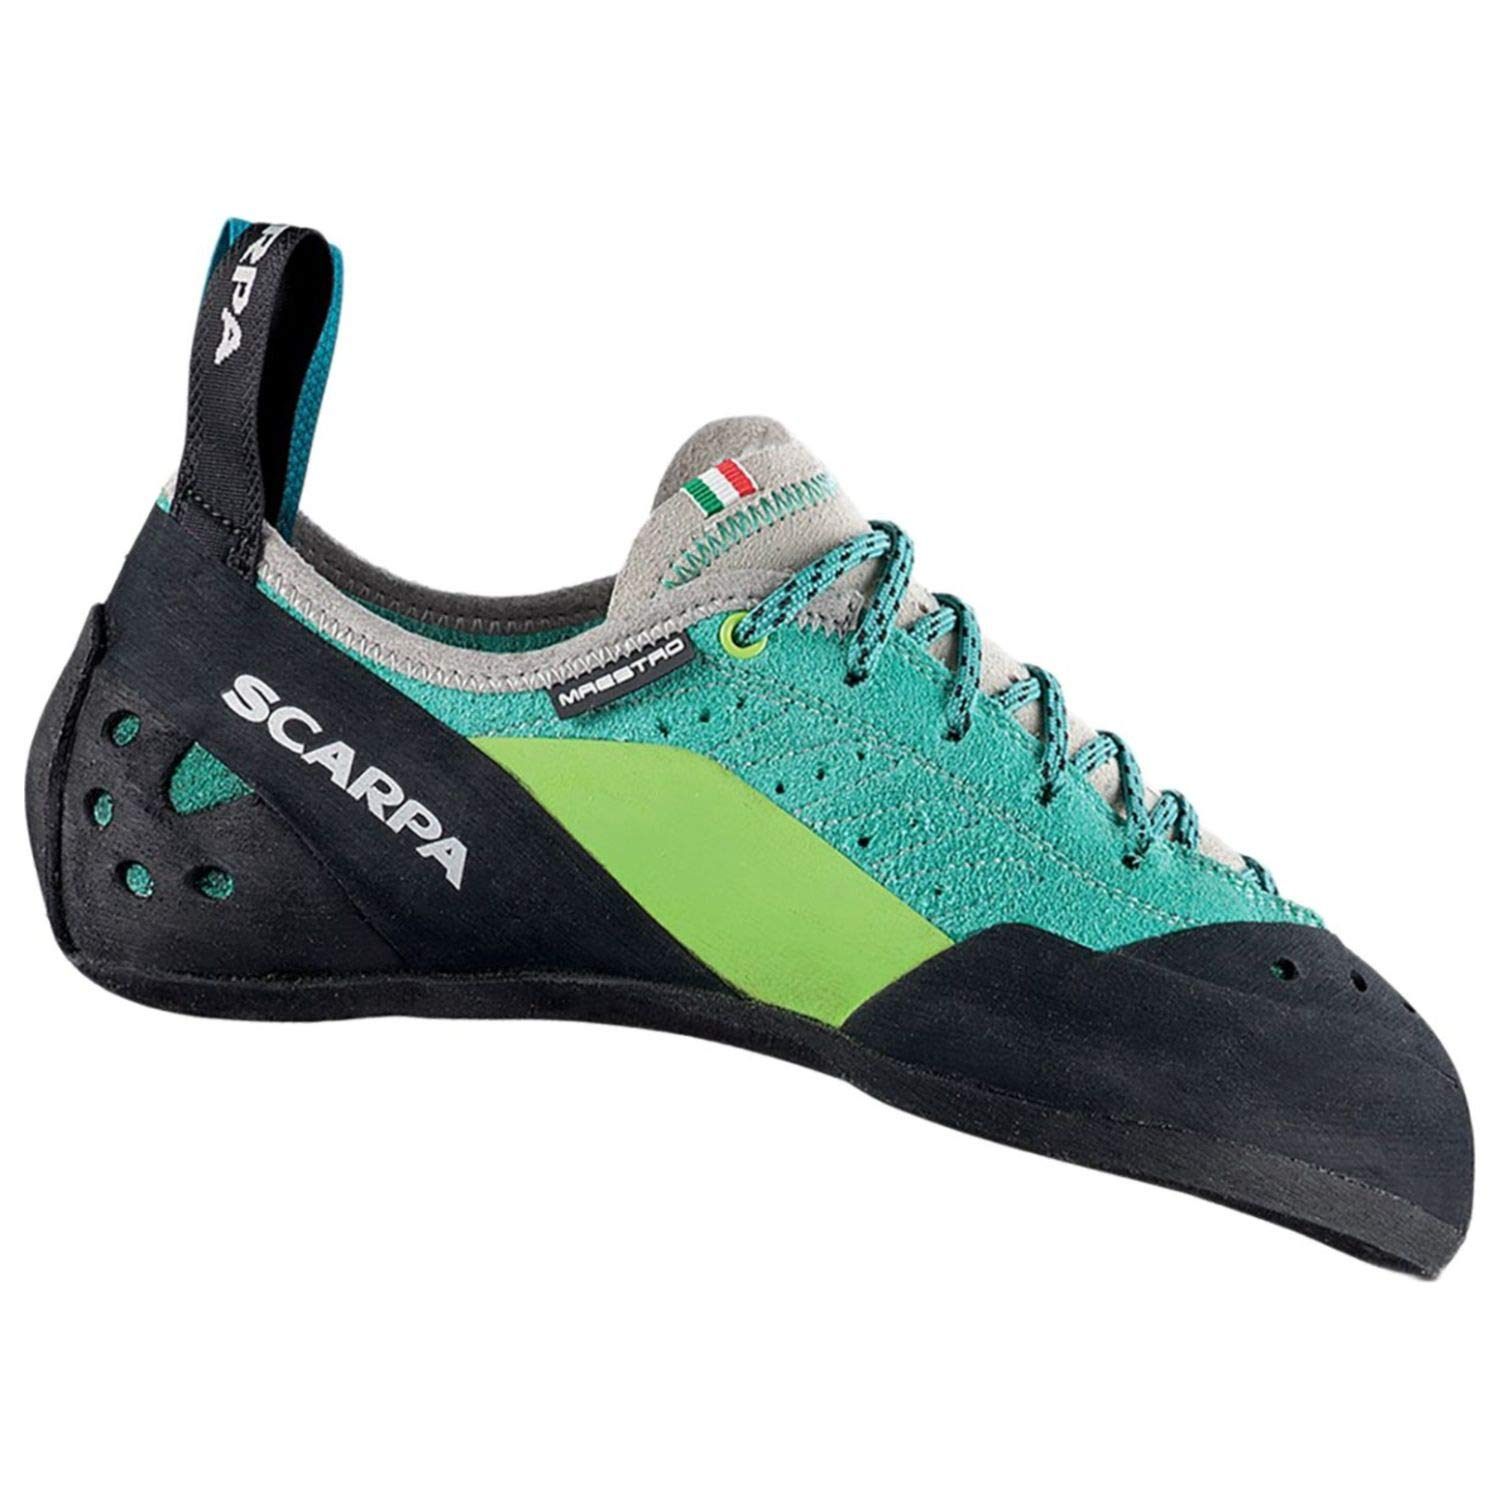 SCARPA Maestro ECO Climbing Shoe - Women's Green Blue 36 by SCARPA